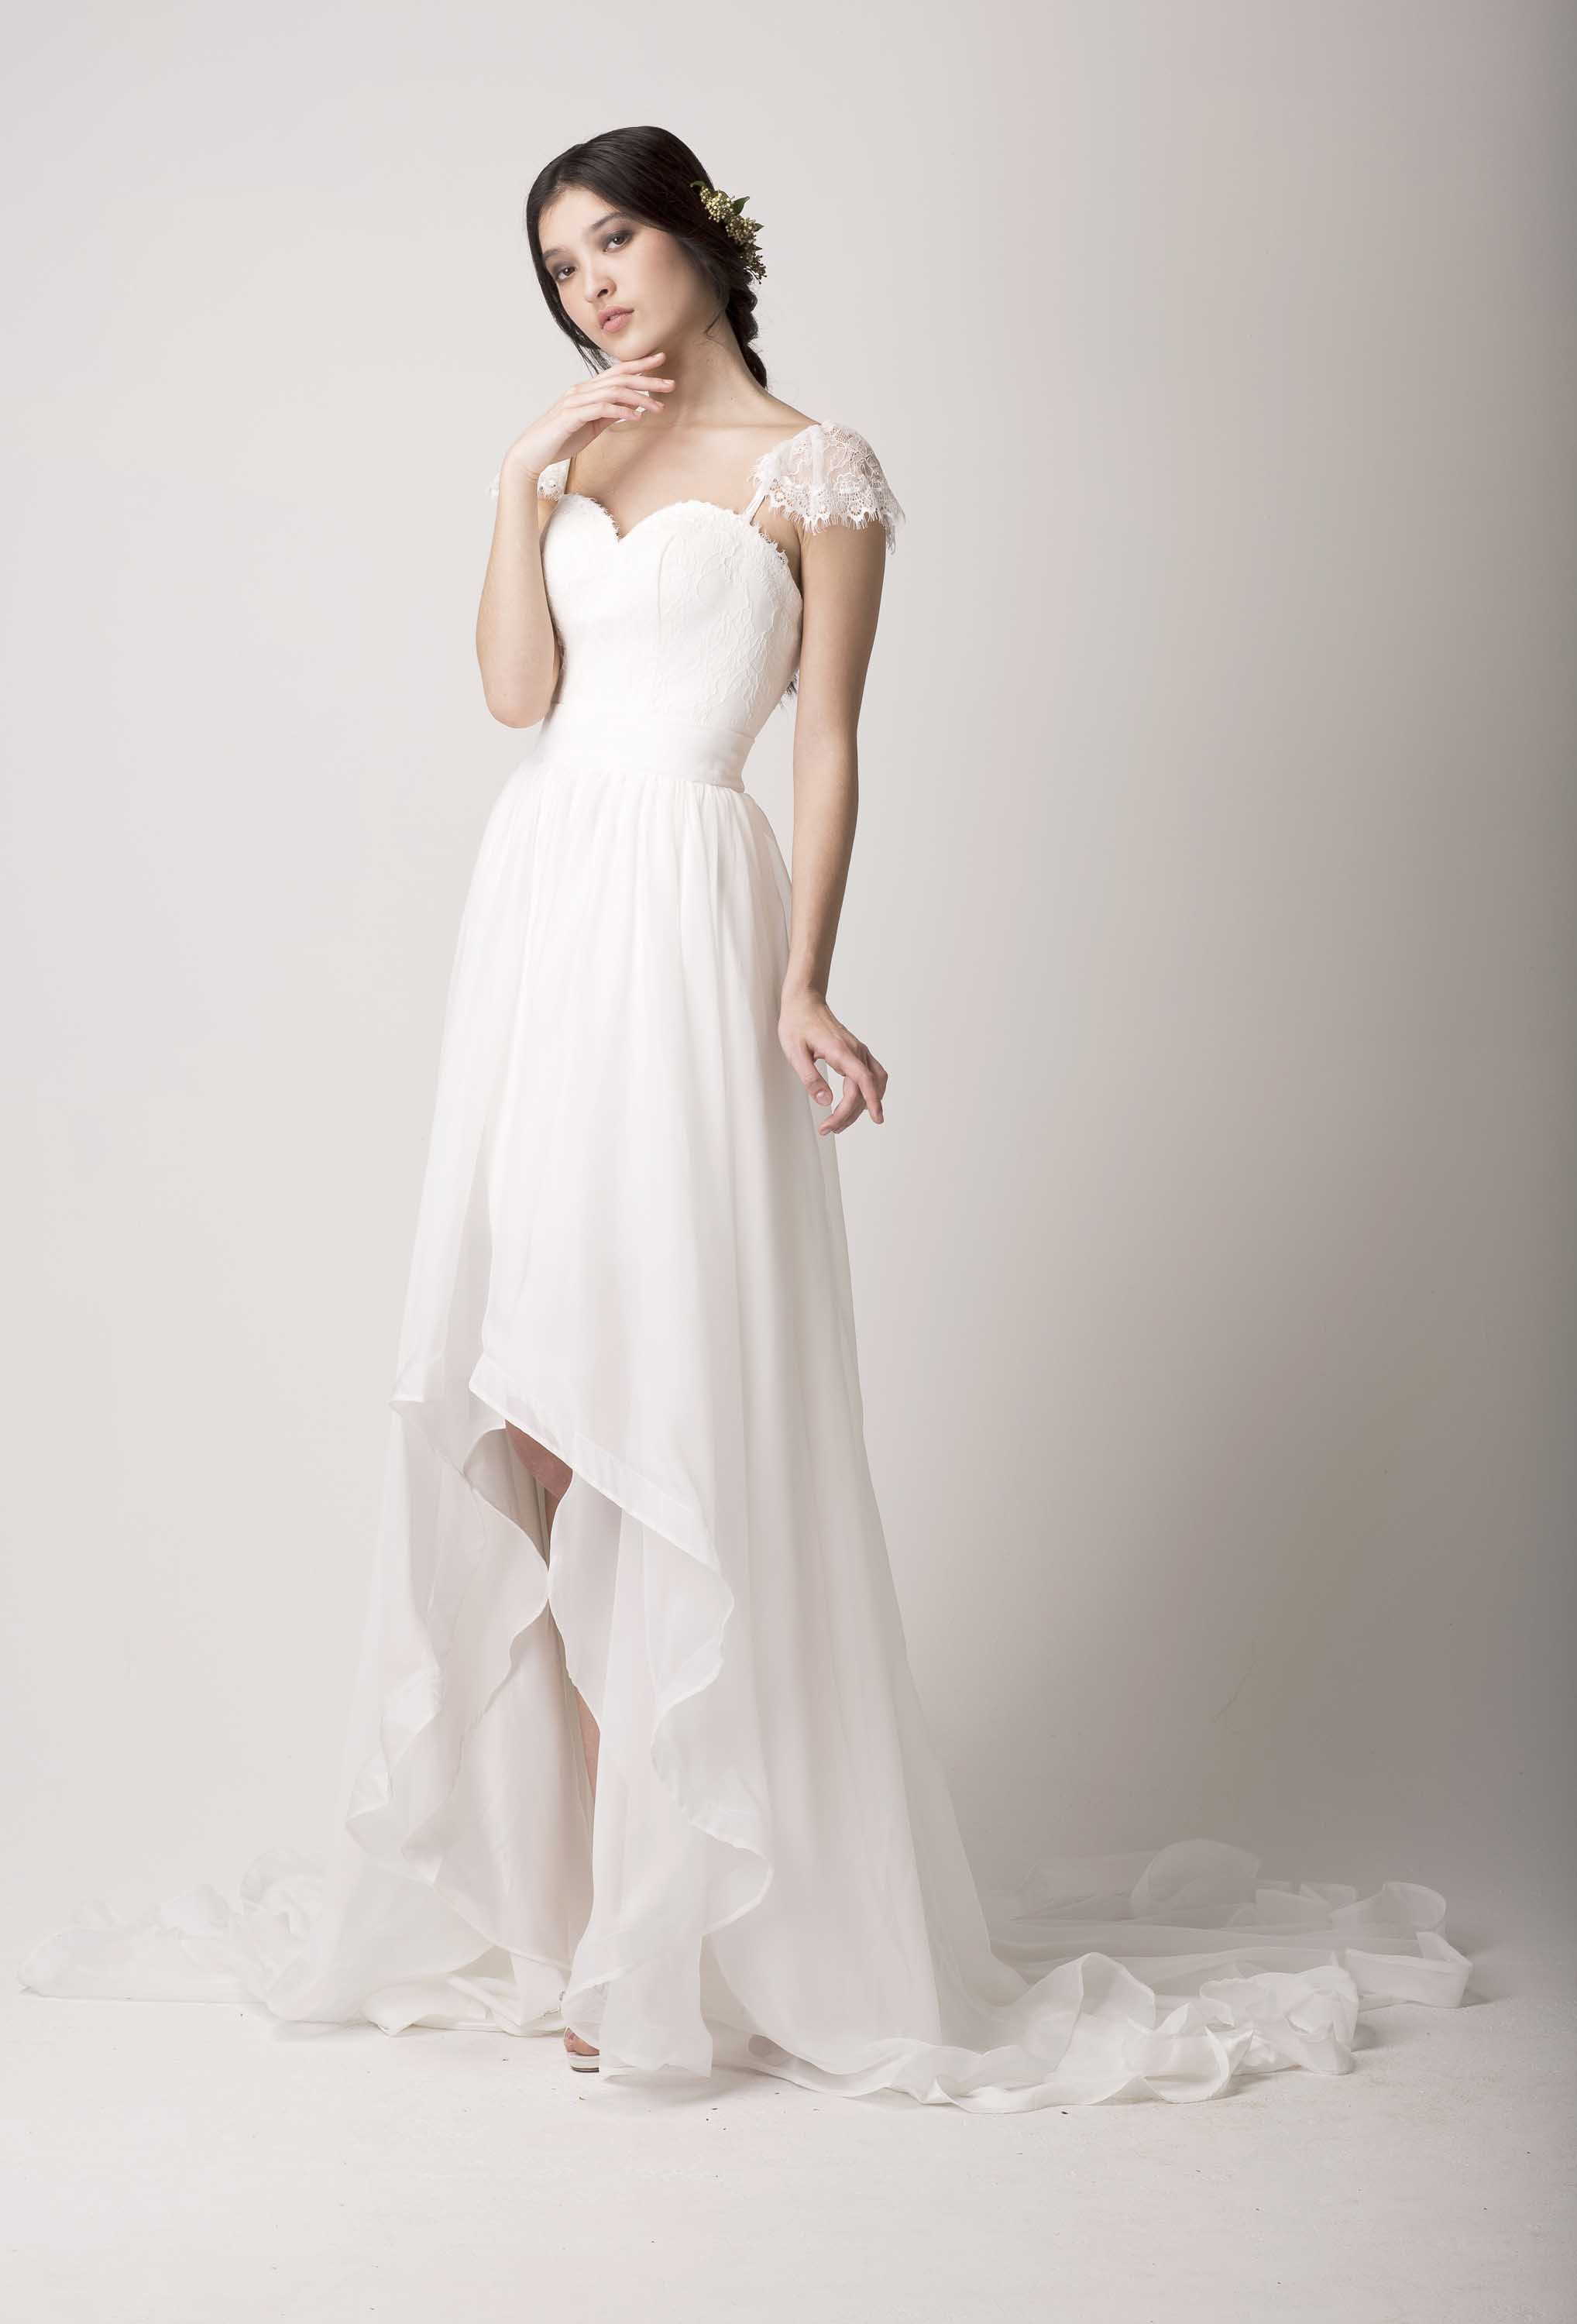 Top 25 High Low Wedding Dresses | High low wedding dresses, High low ...